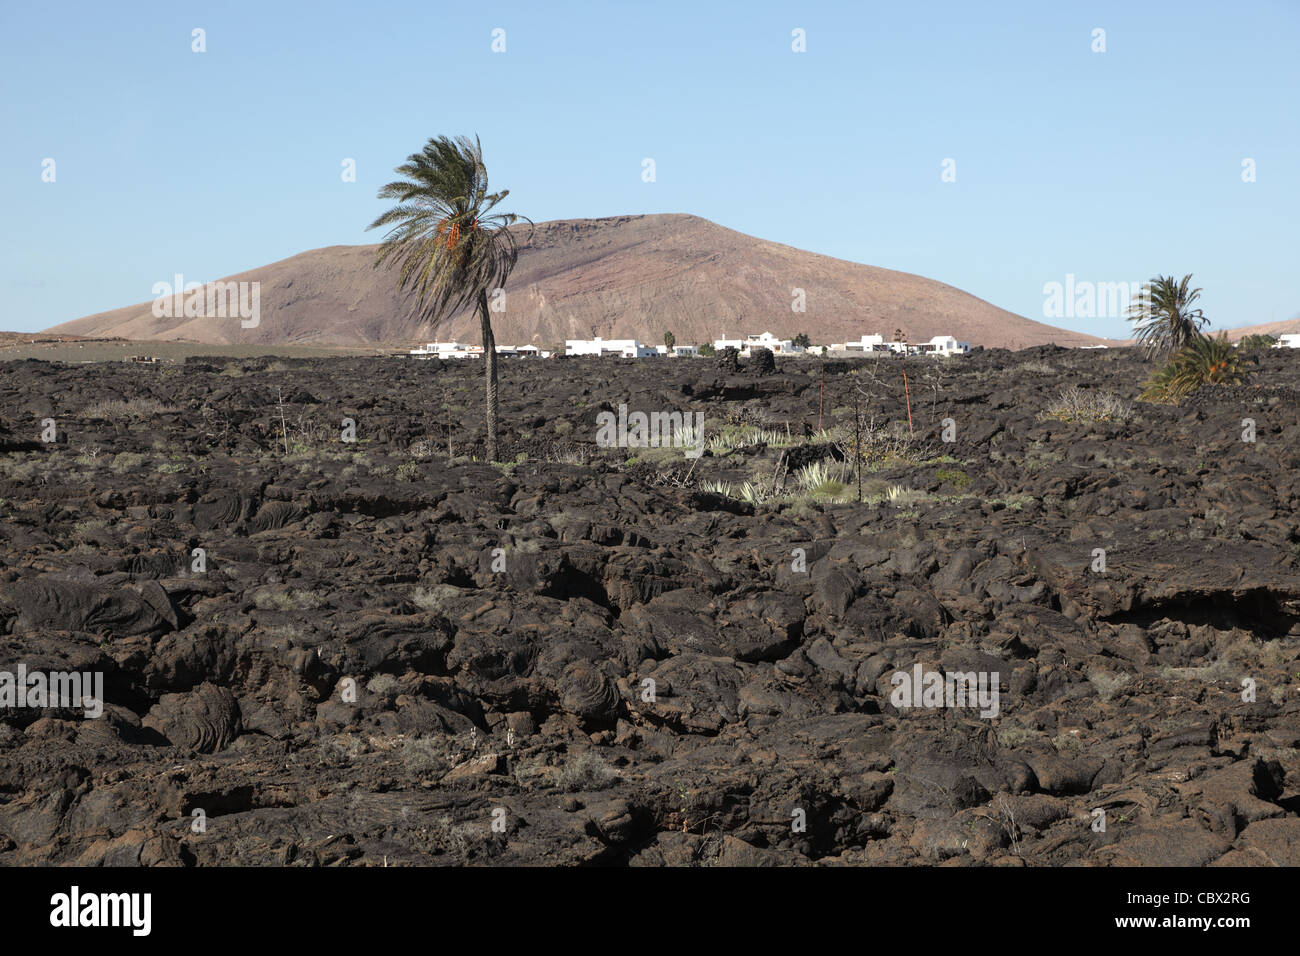 Typical Lanzarote landscape, lava, palm tree, village, and volcano - Stock Image